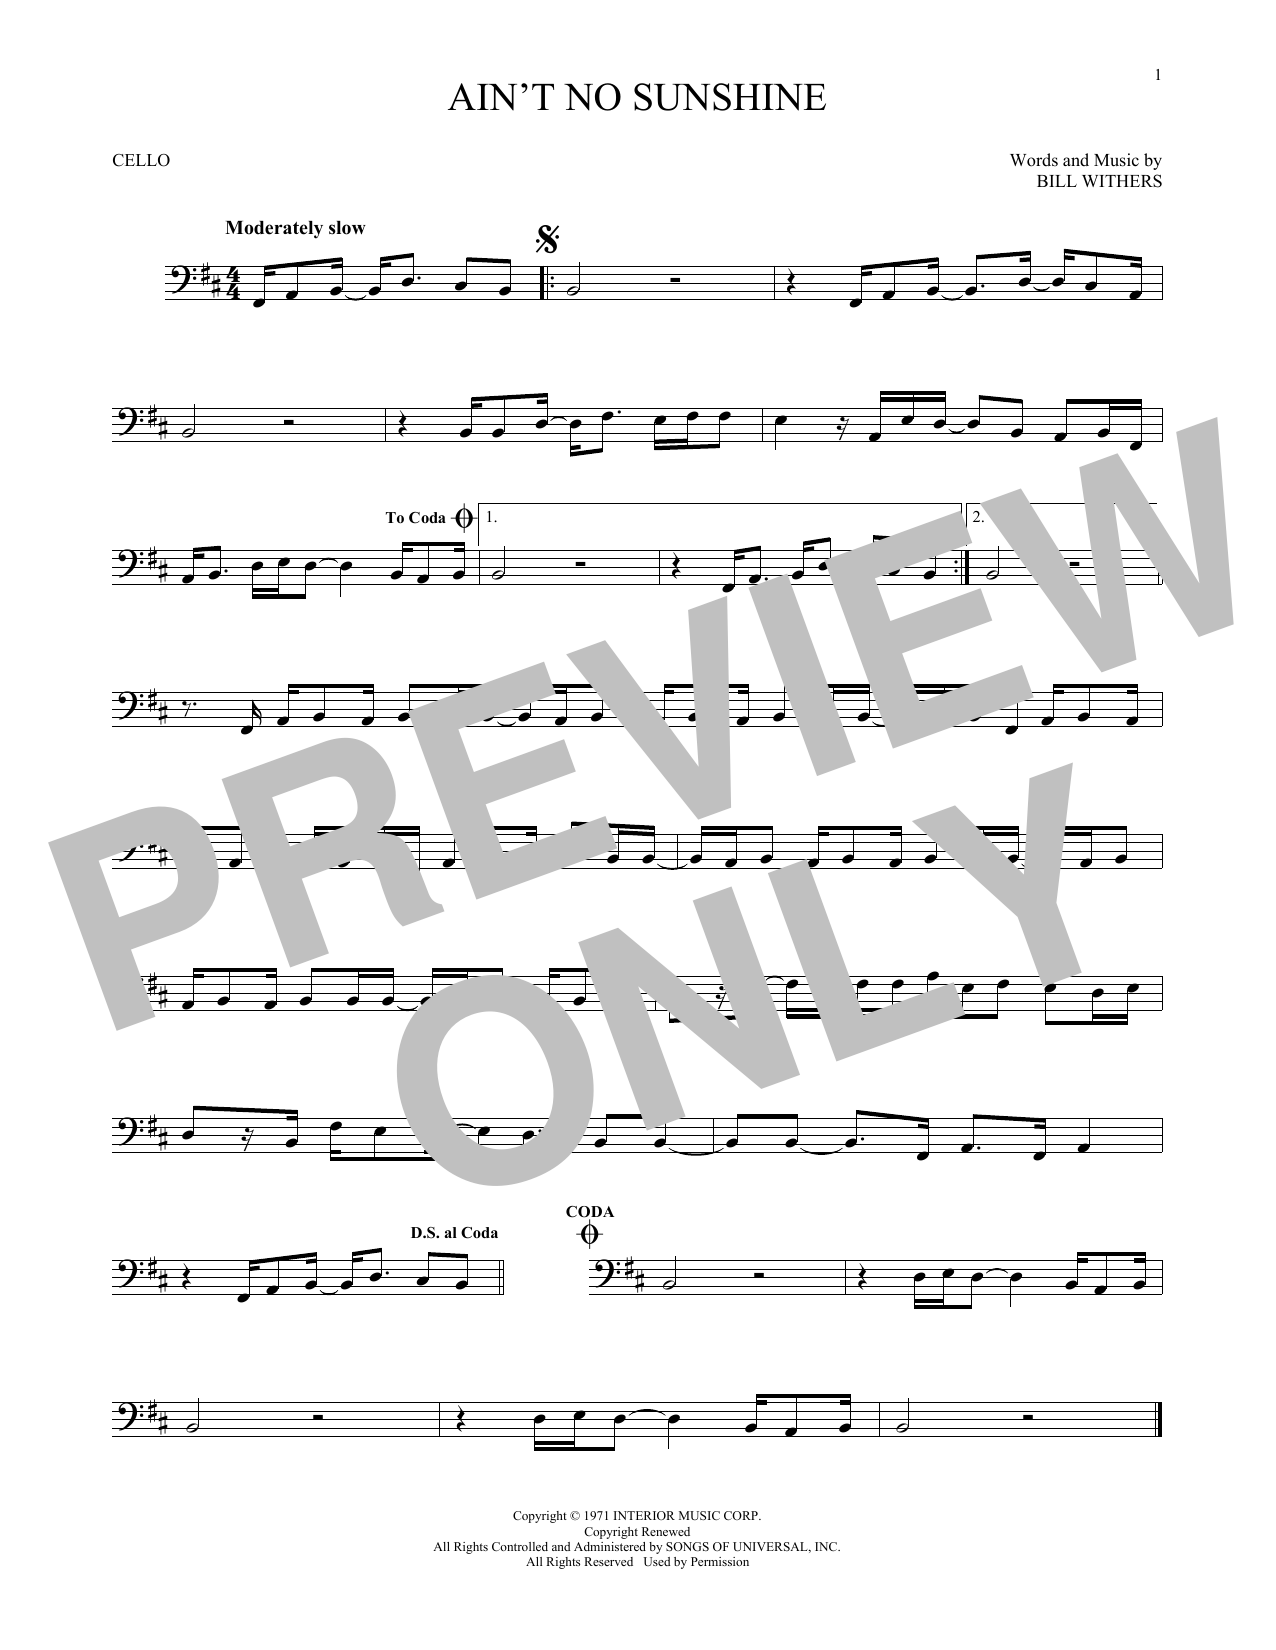 Sheet music digital files to print licensed bill withers digital aint no sunshine hexwebz Images